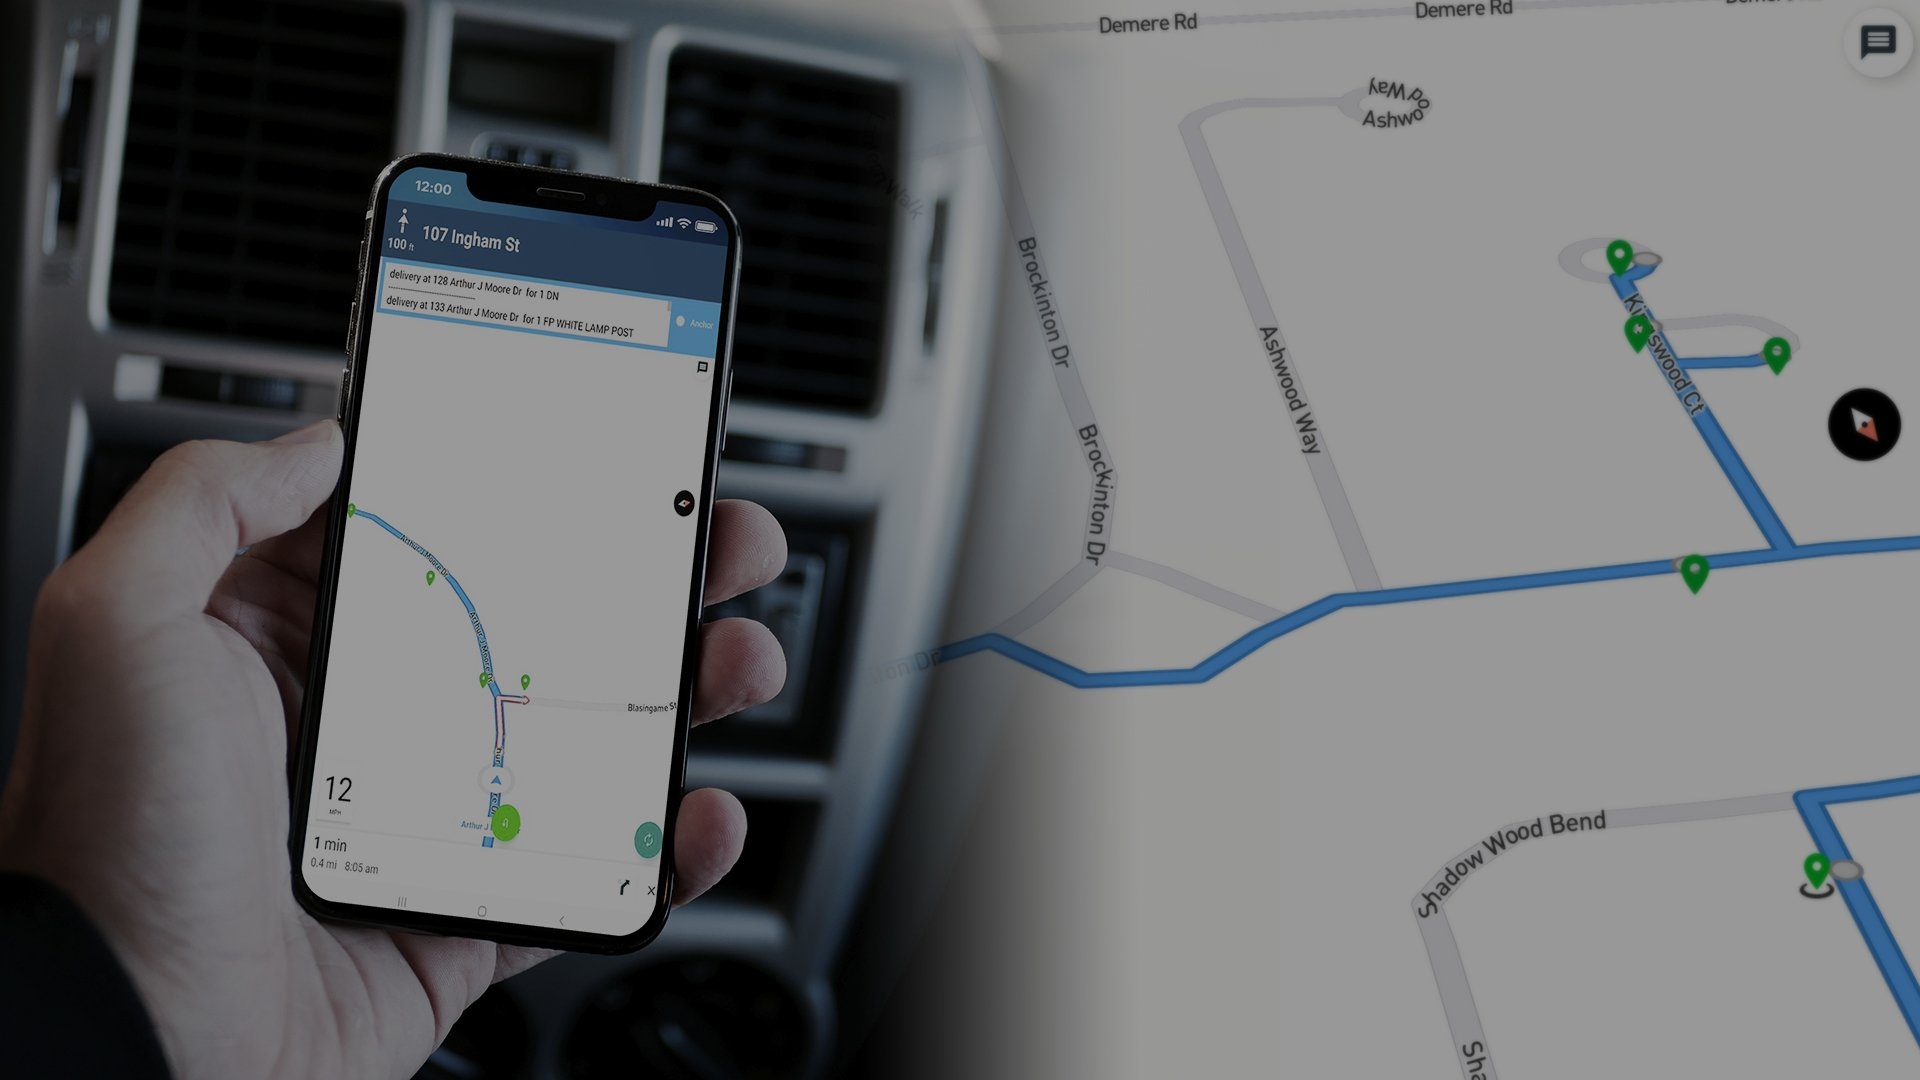 TRACK DELIVERIES IN REAL TIME